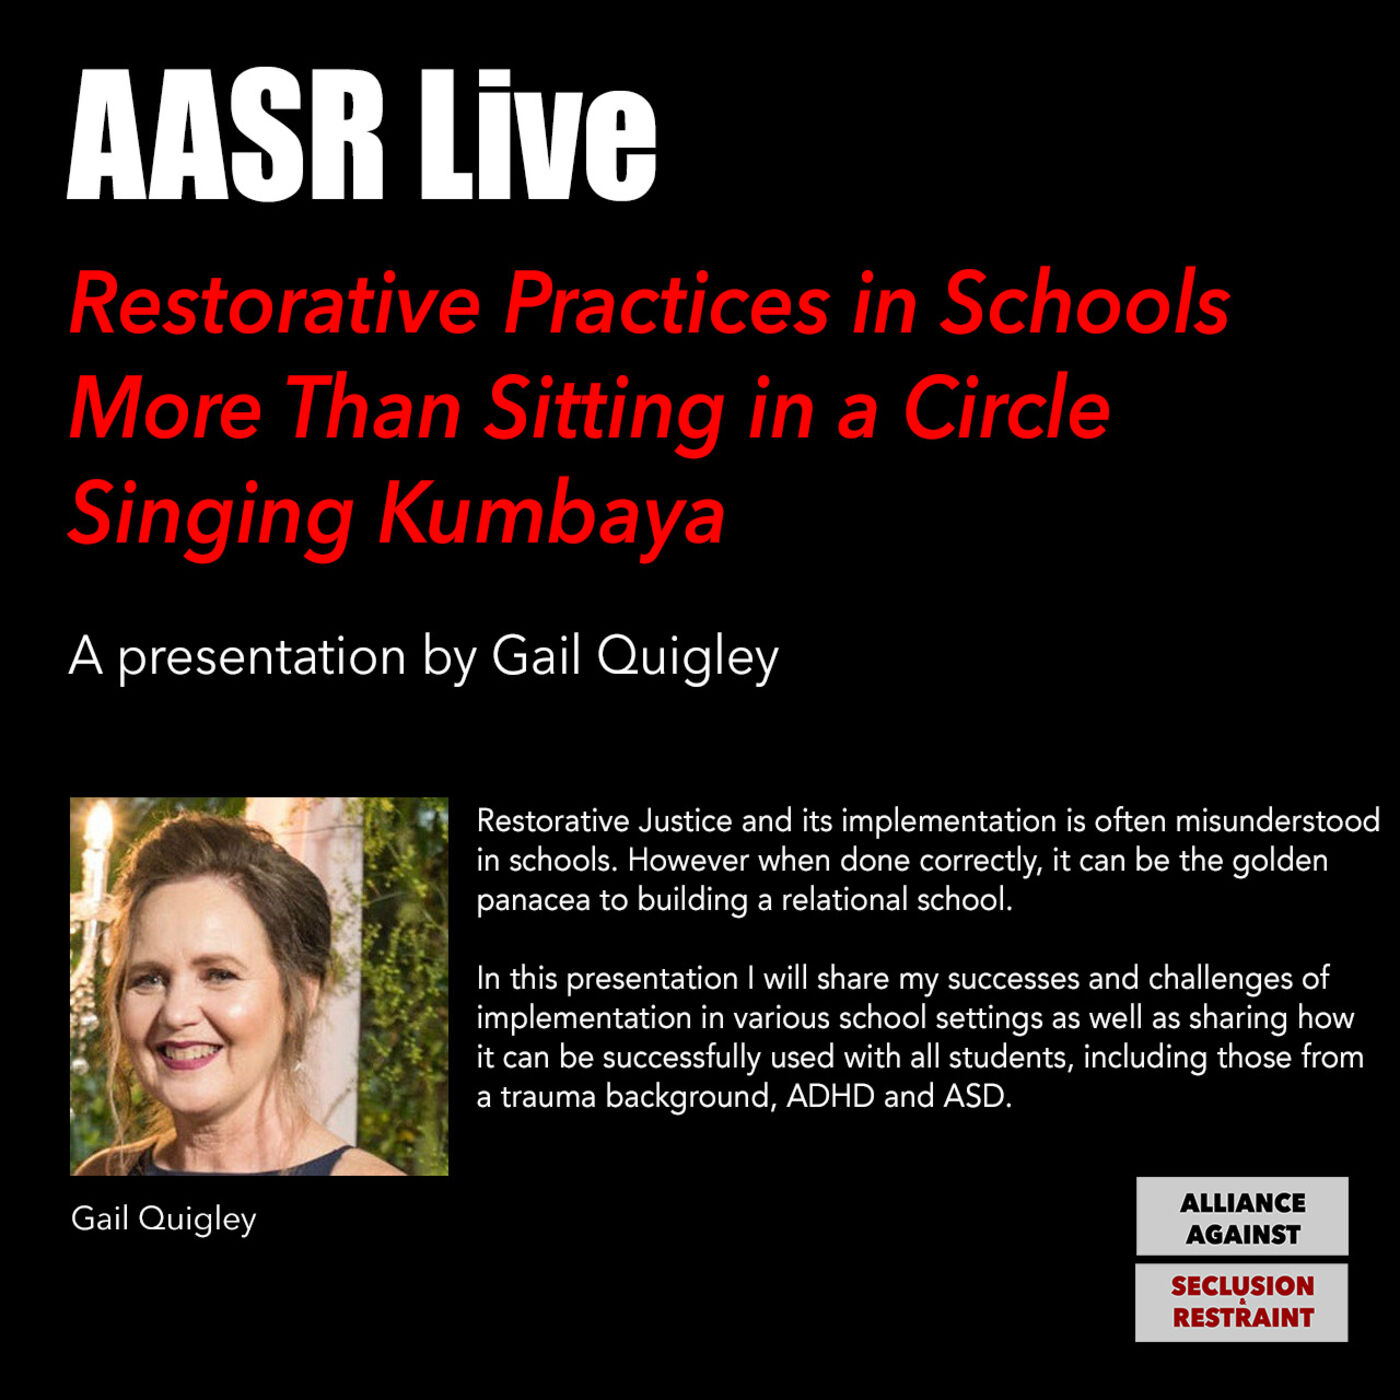 Restorative Practices in Schools More Than Sitting in a Circle Singing Kumbaya